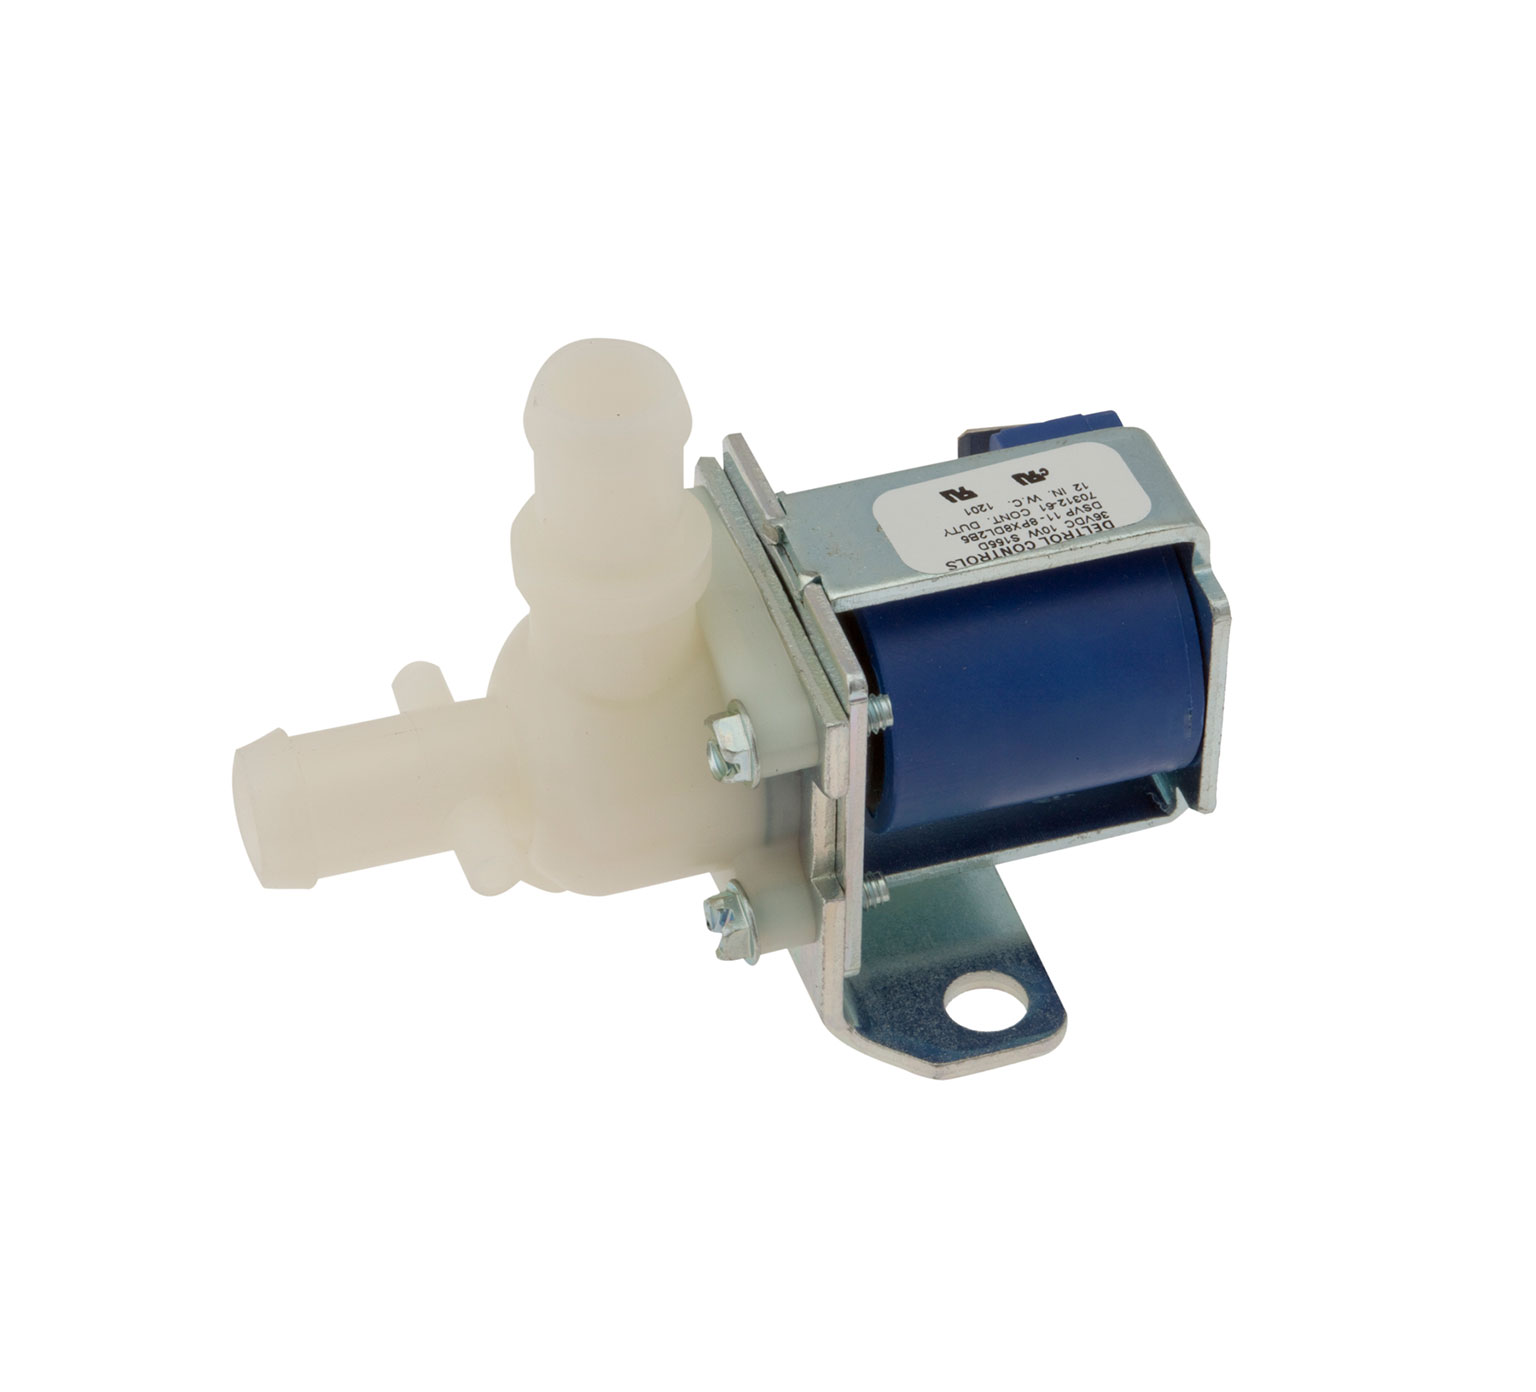 Solution Valve - 24 Valve Adjustable Replaces Tennant 612498